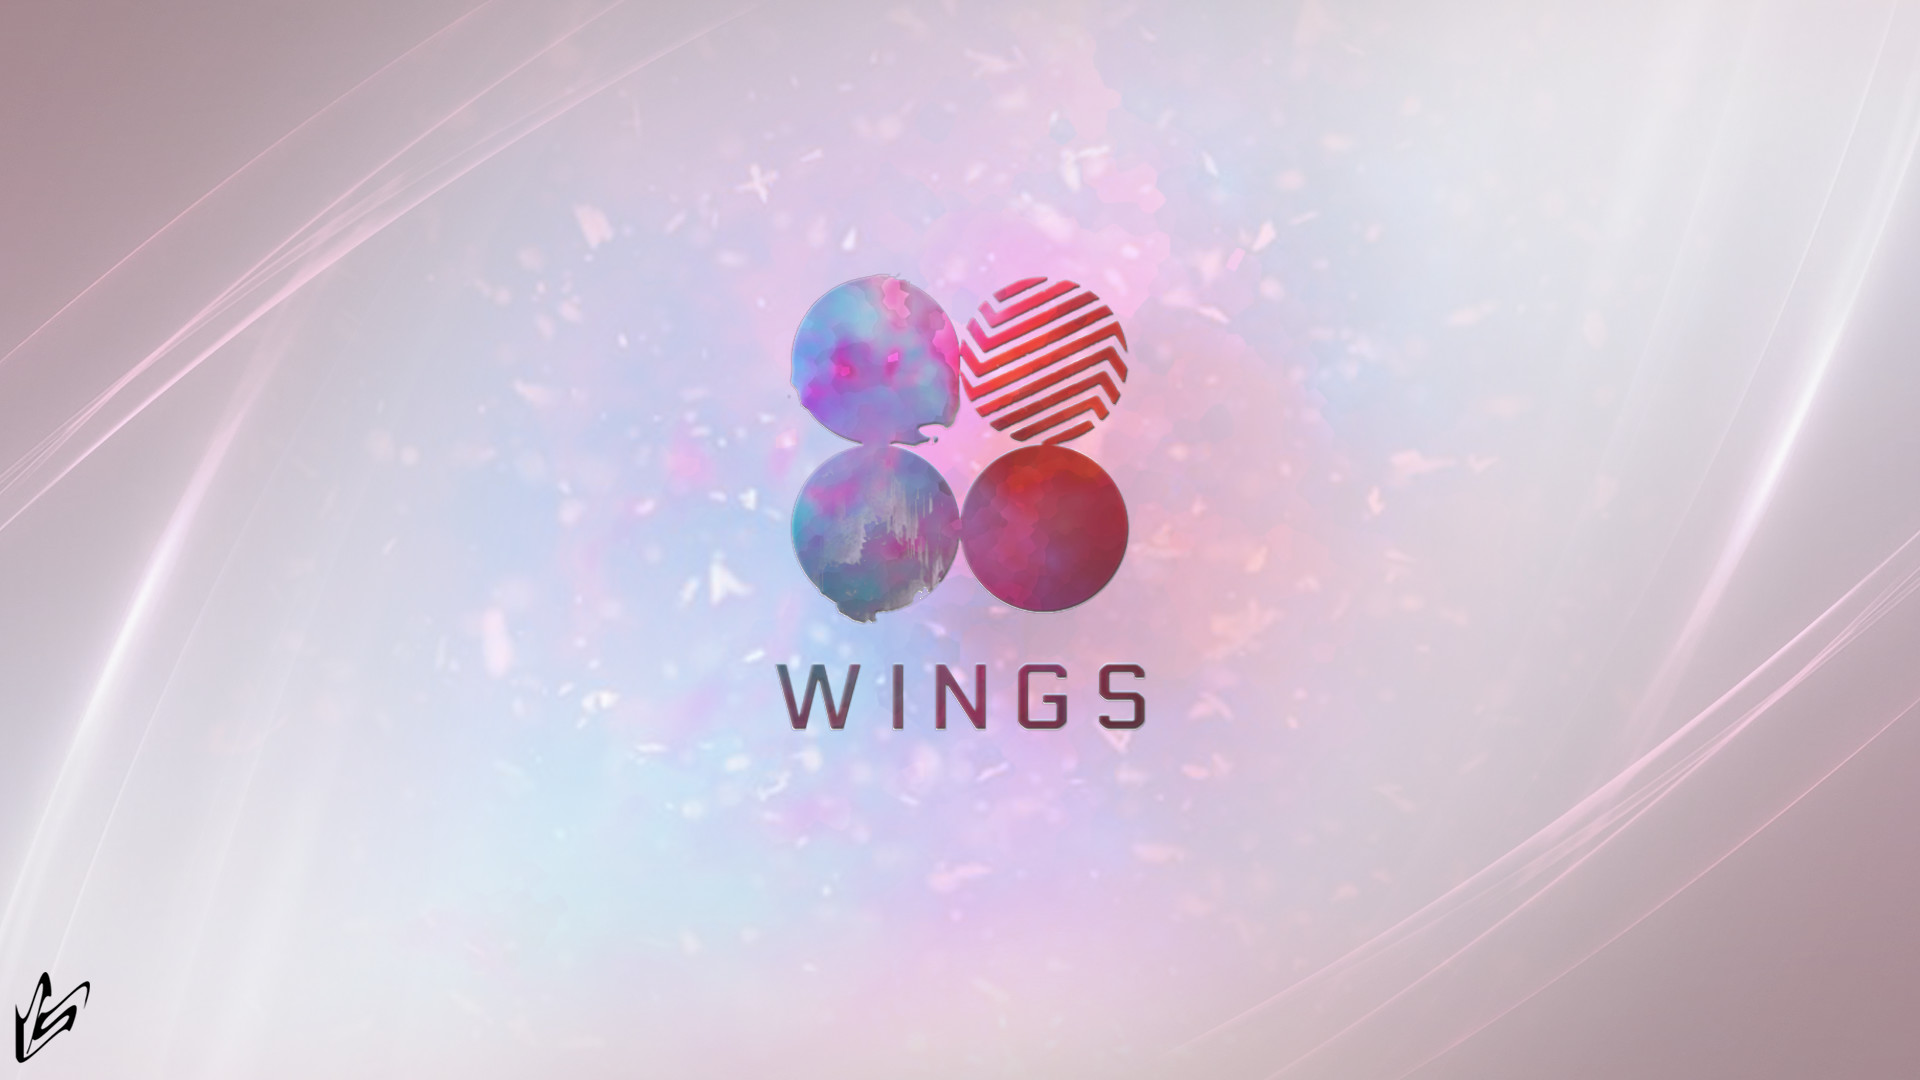 Bts Wings Wallpapers 90 images 1920x1080